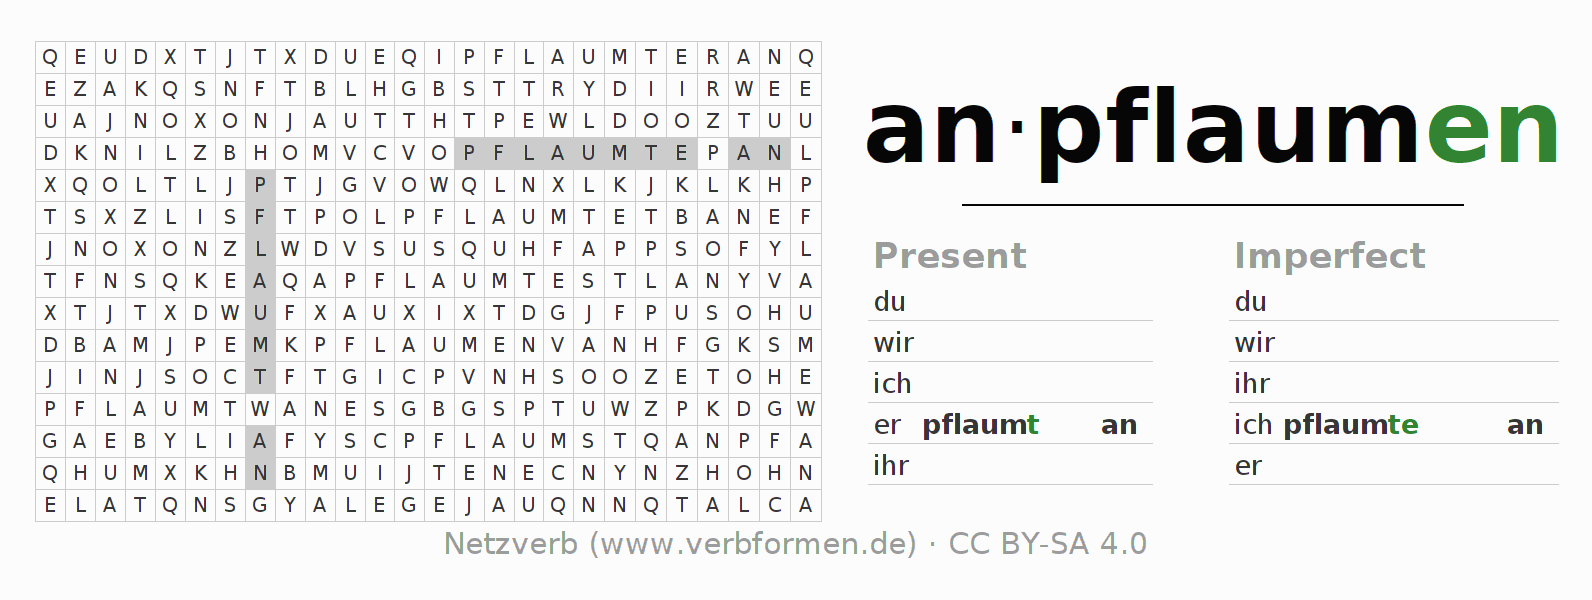 Word search puzzle for the conjugation of the verb anpflaumen